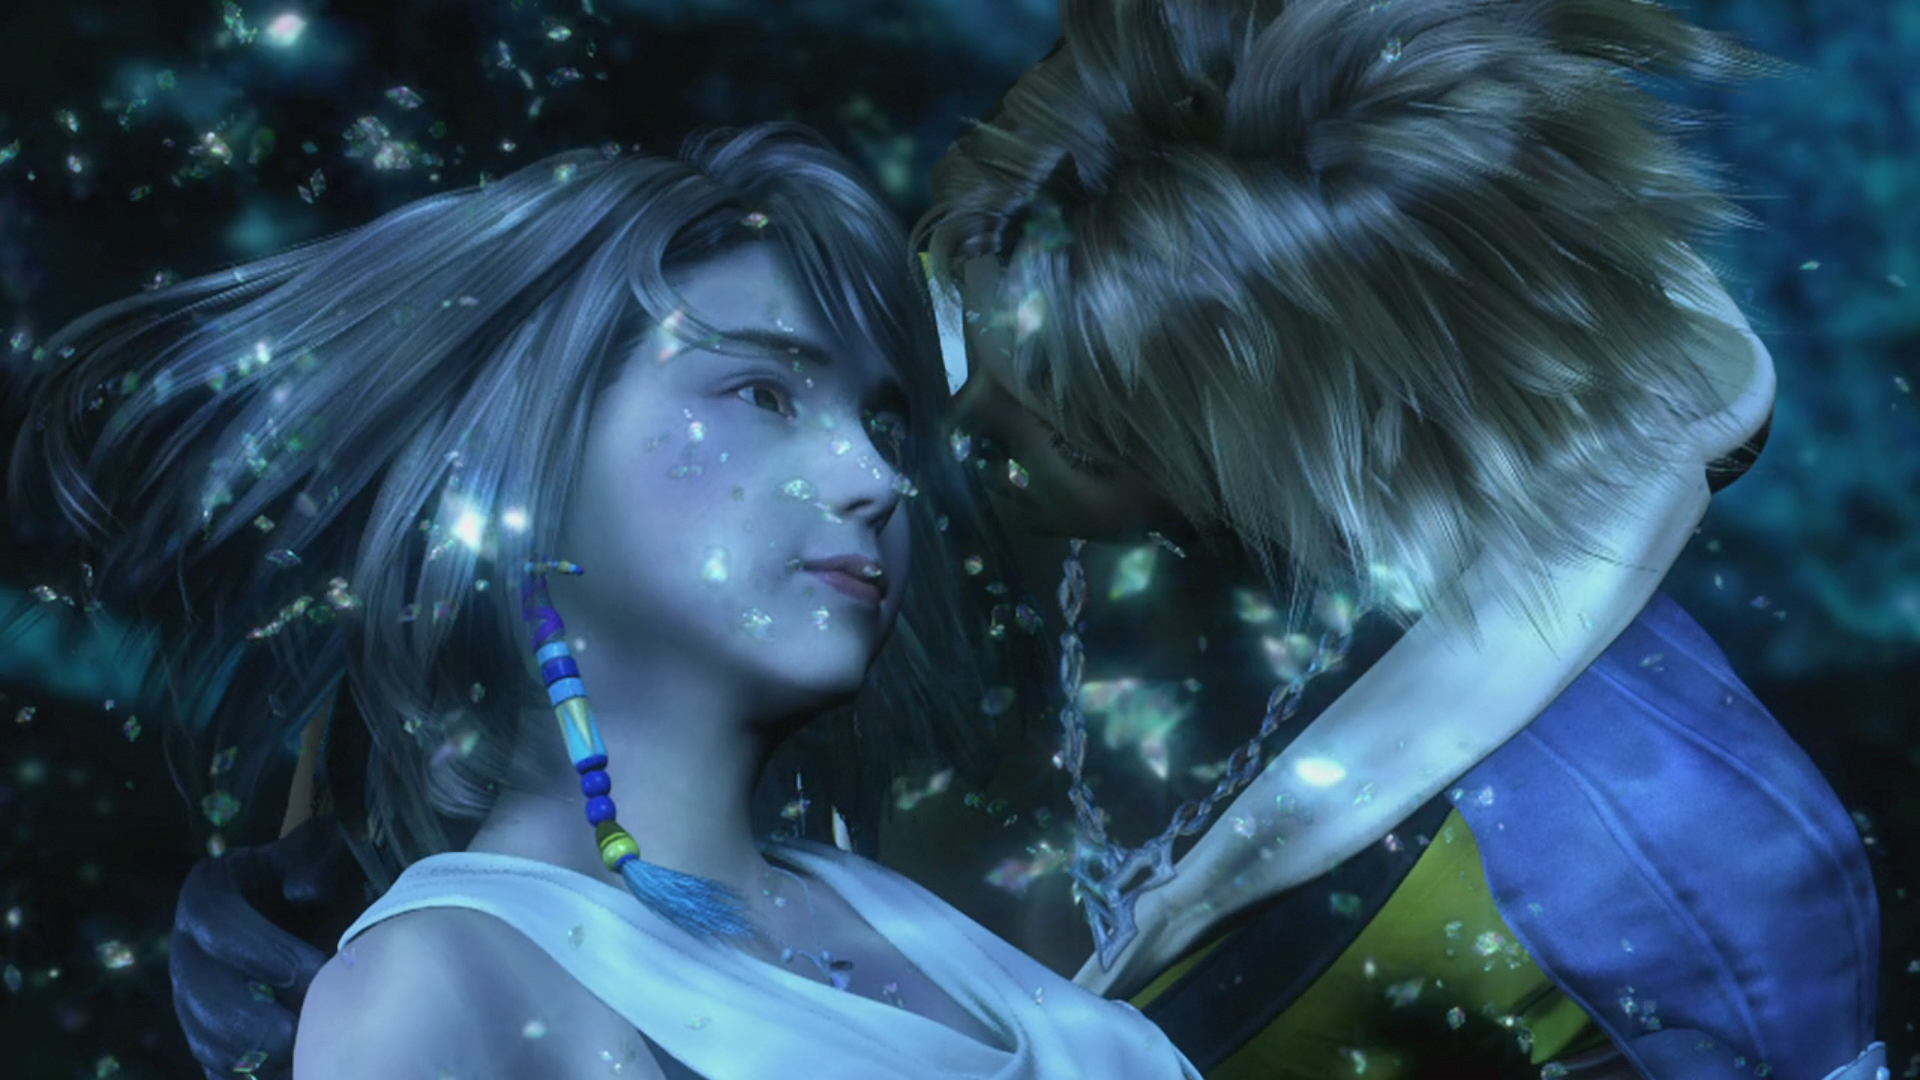 X X 2 Final Fantasy X X 2 Hd Remaster Arrives On Ps4 This Week